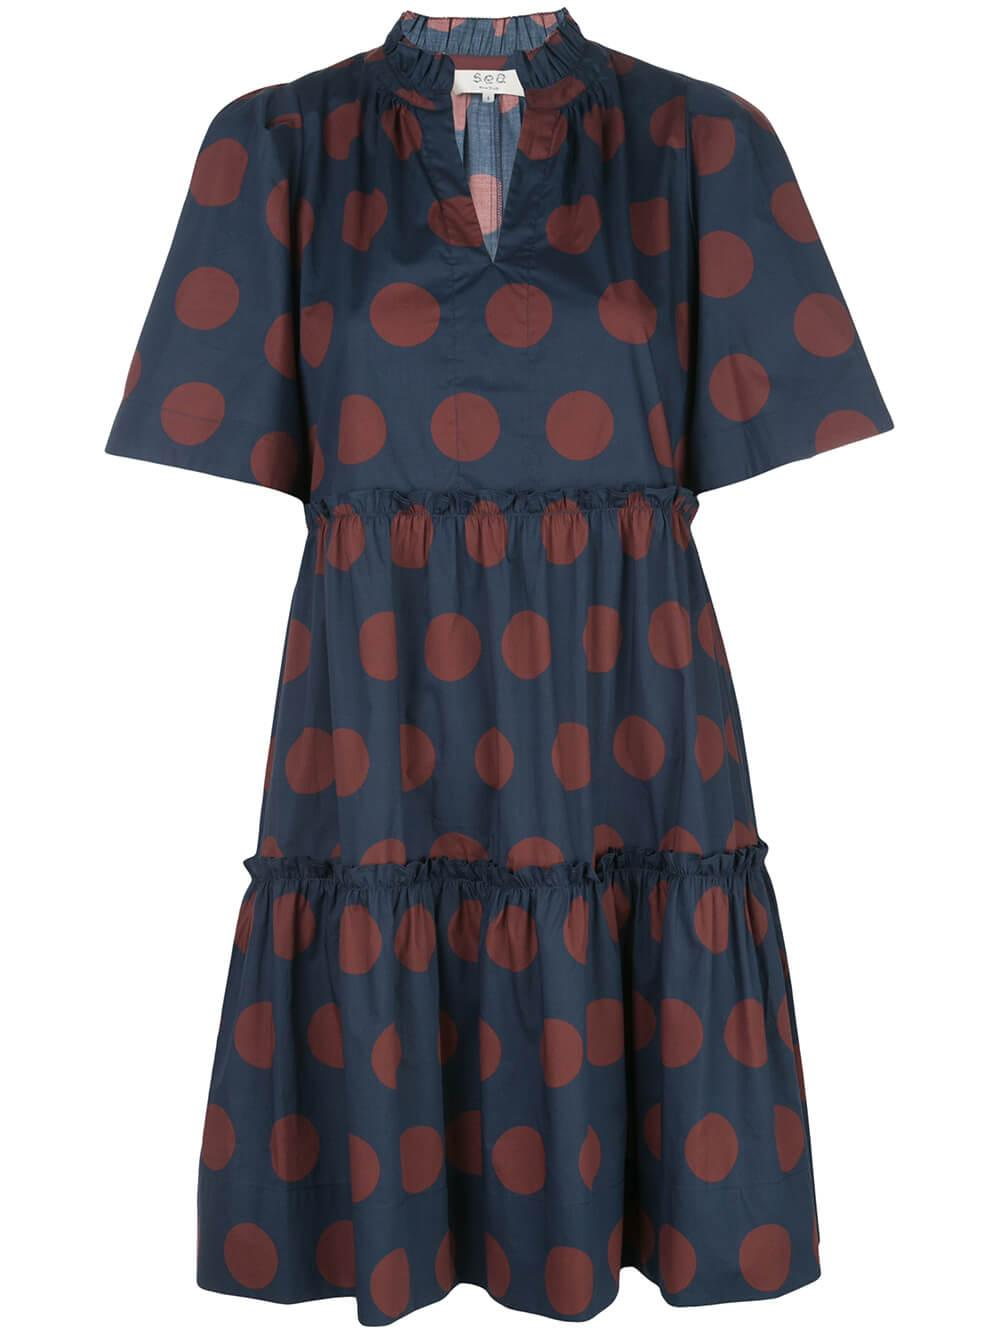 Penny Short Sleeve Polka Dot Dress